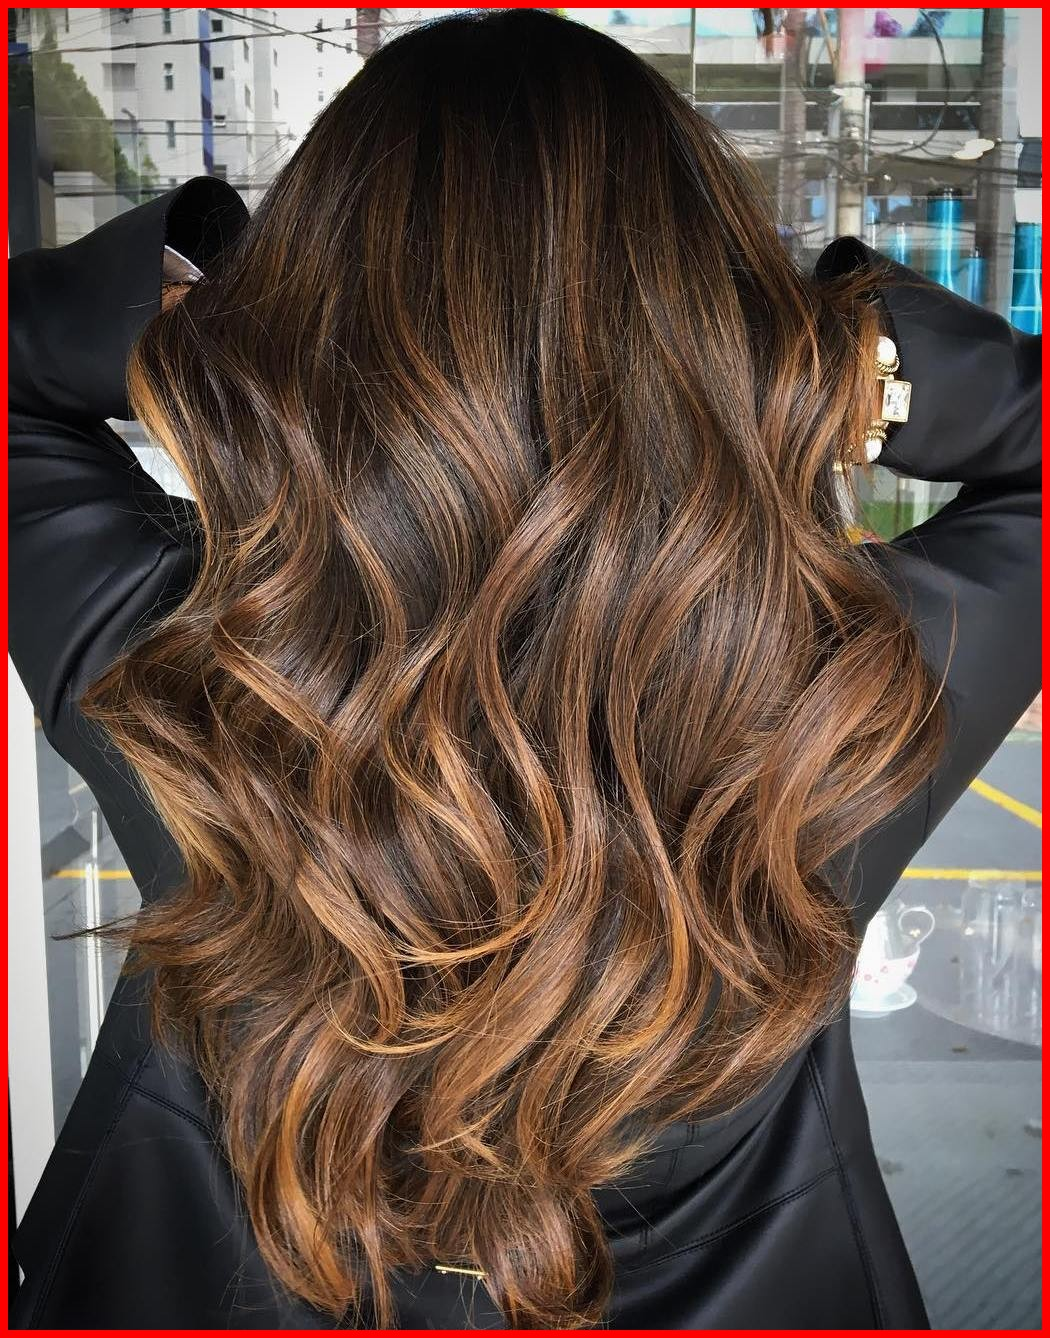 Some Amazing Hair Highlights – Design Ideas For Women